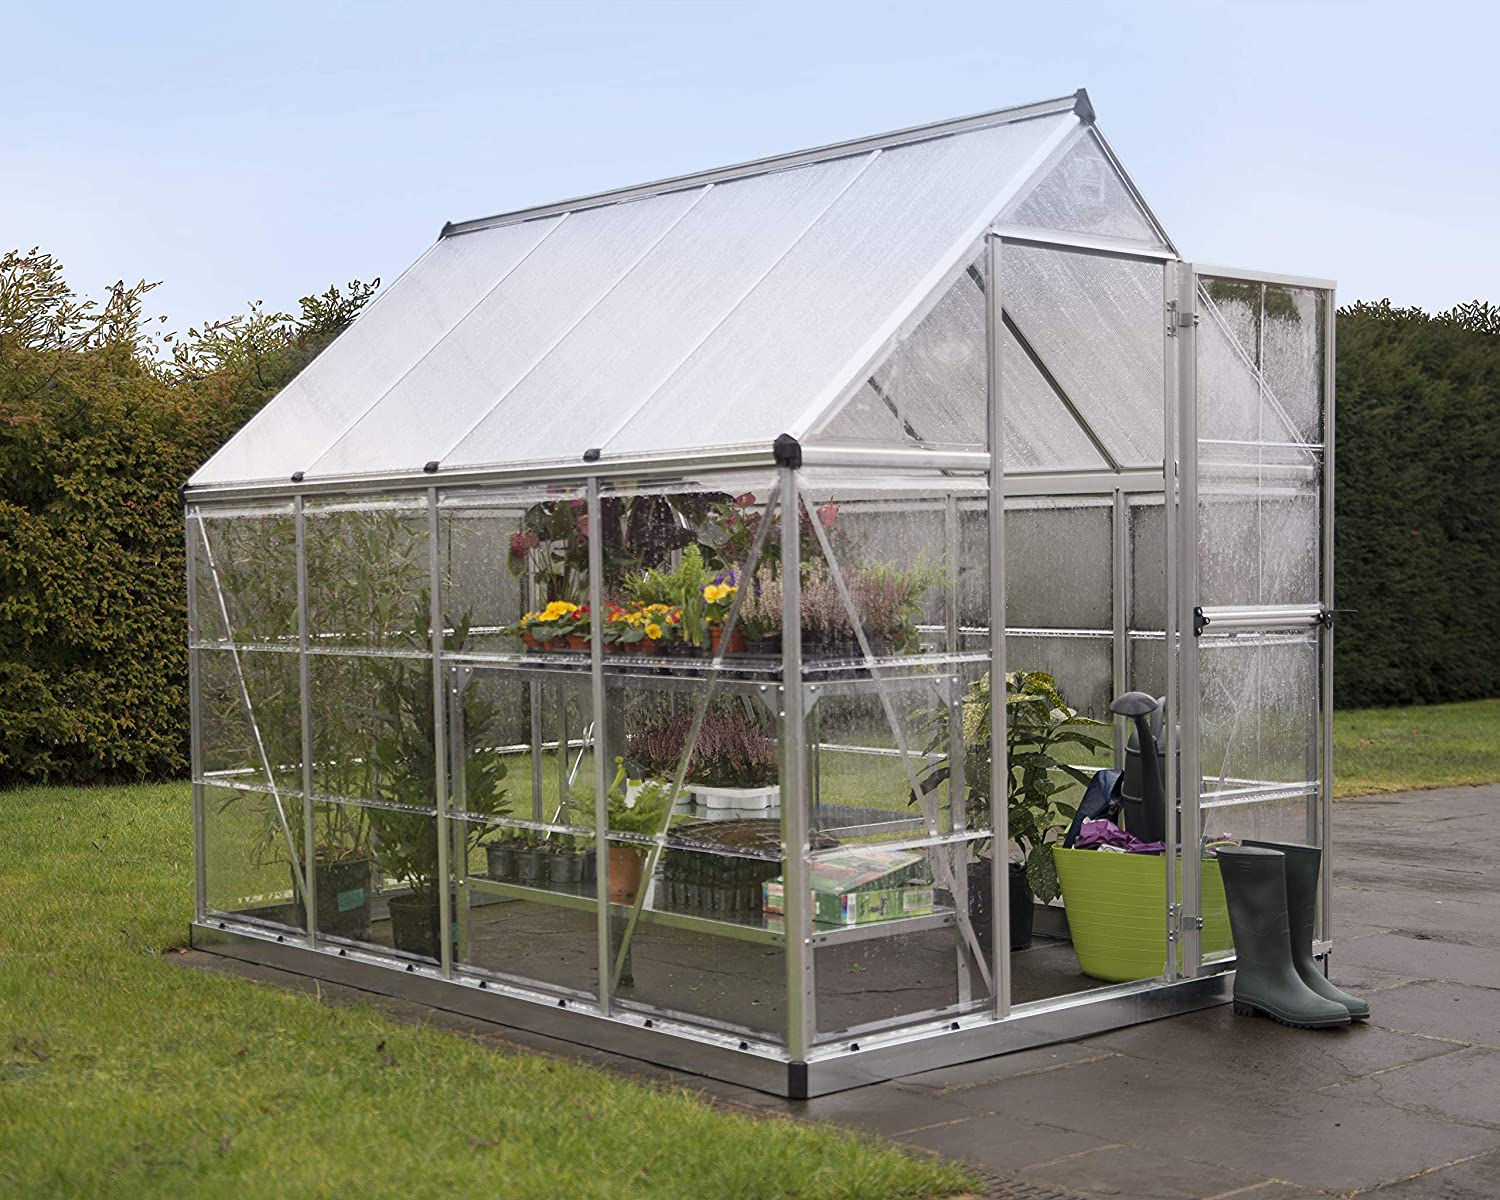 Palram HG5508 Hybrid Hobby Greenhouse Review